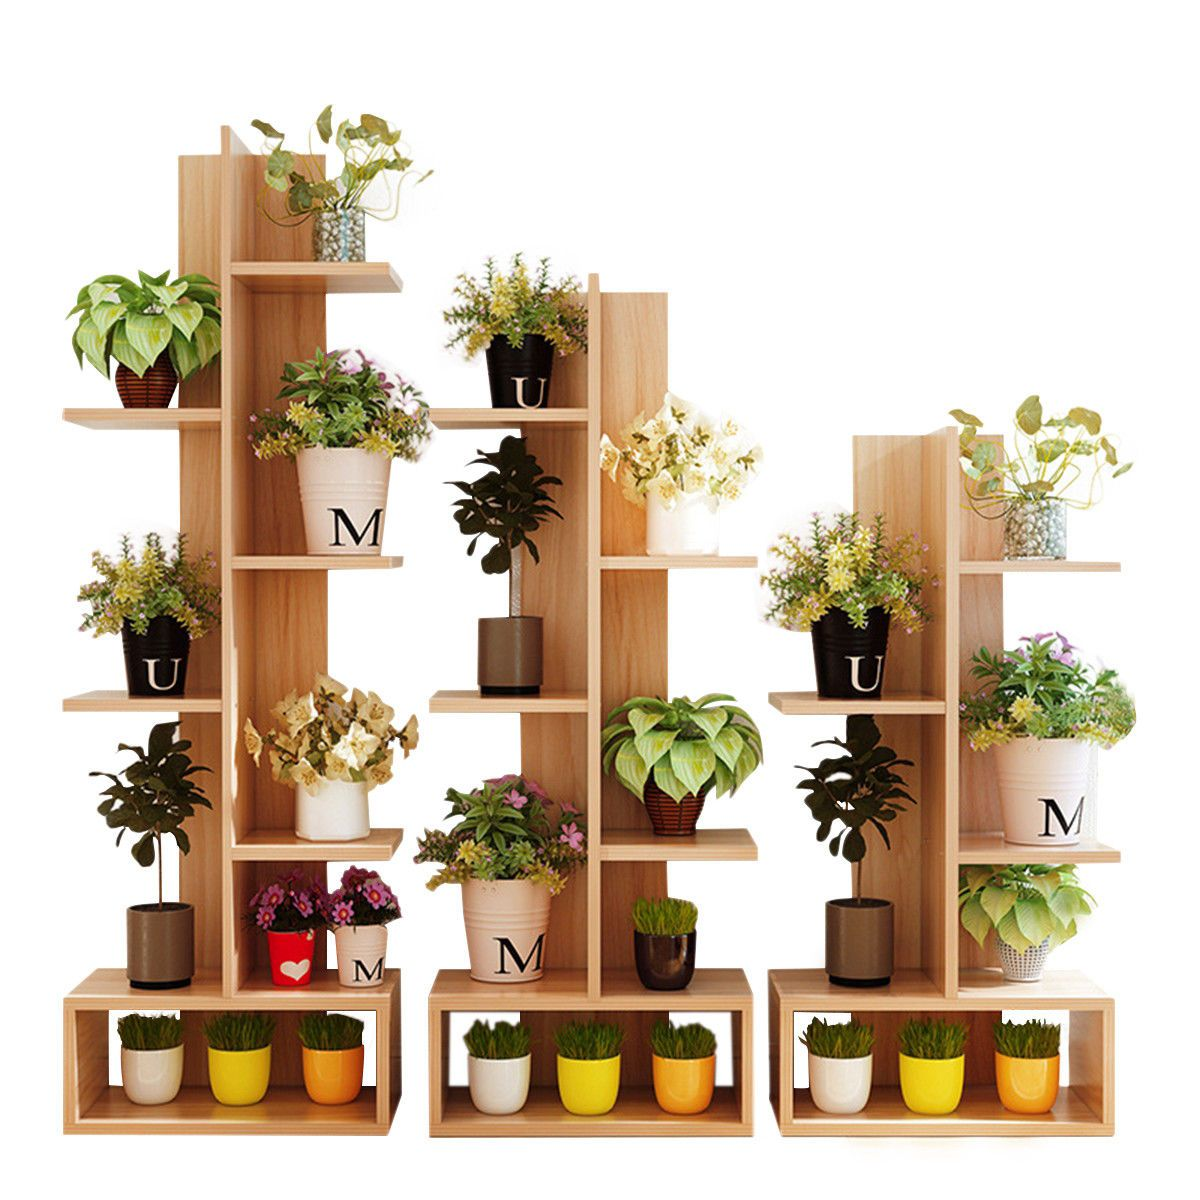 Home in 2020 House plants decor, Diy plant stand, Plant